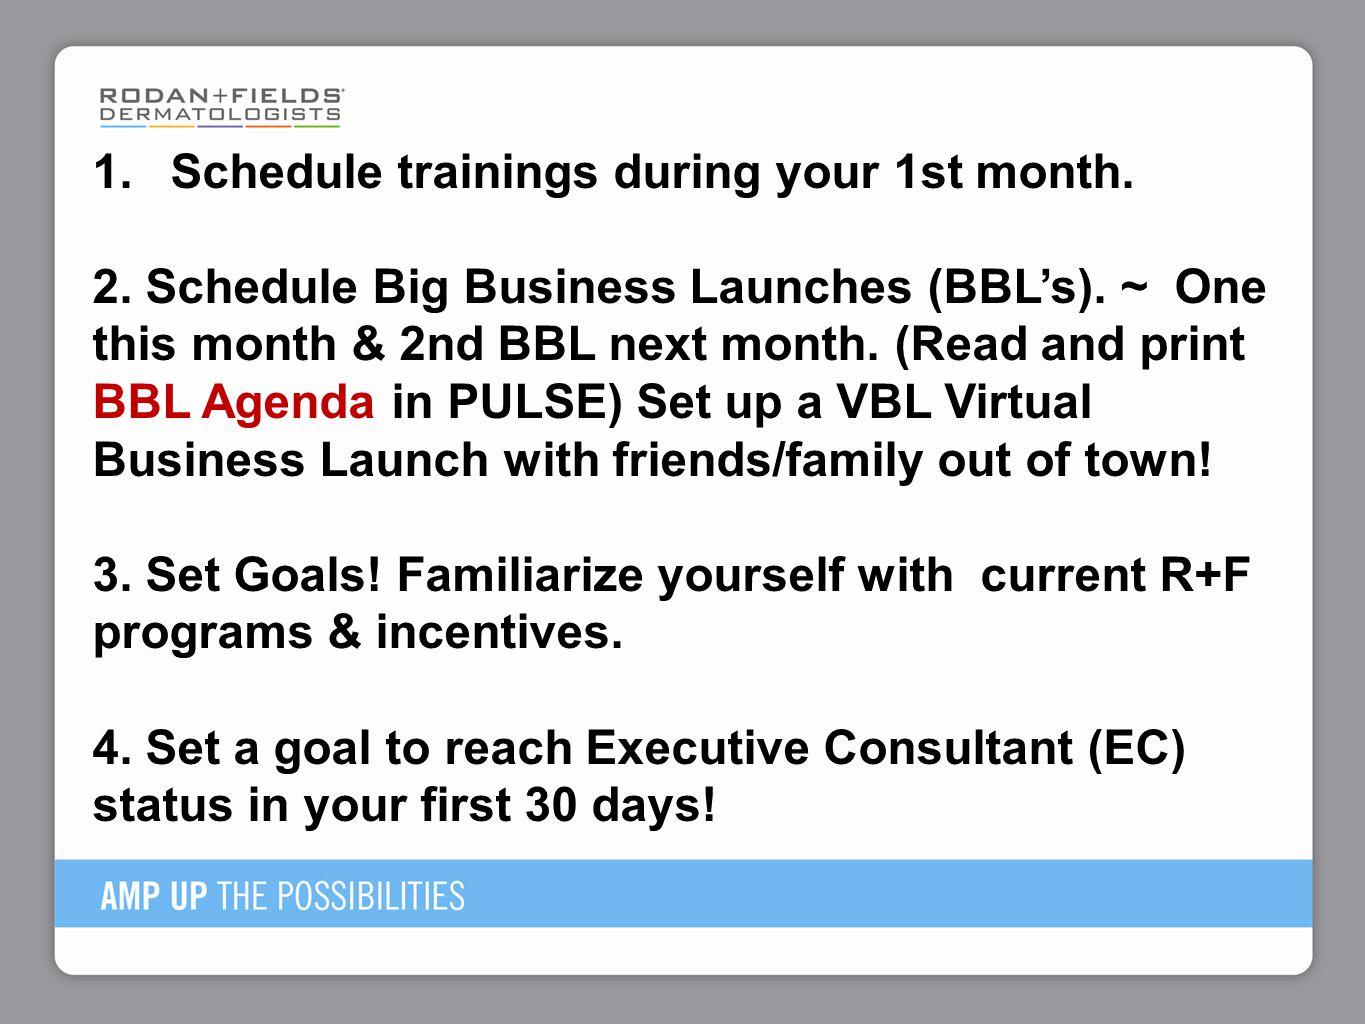 Schedule trainings during your 1st month.